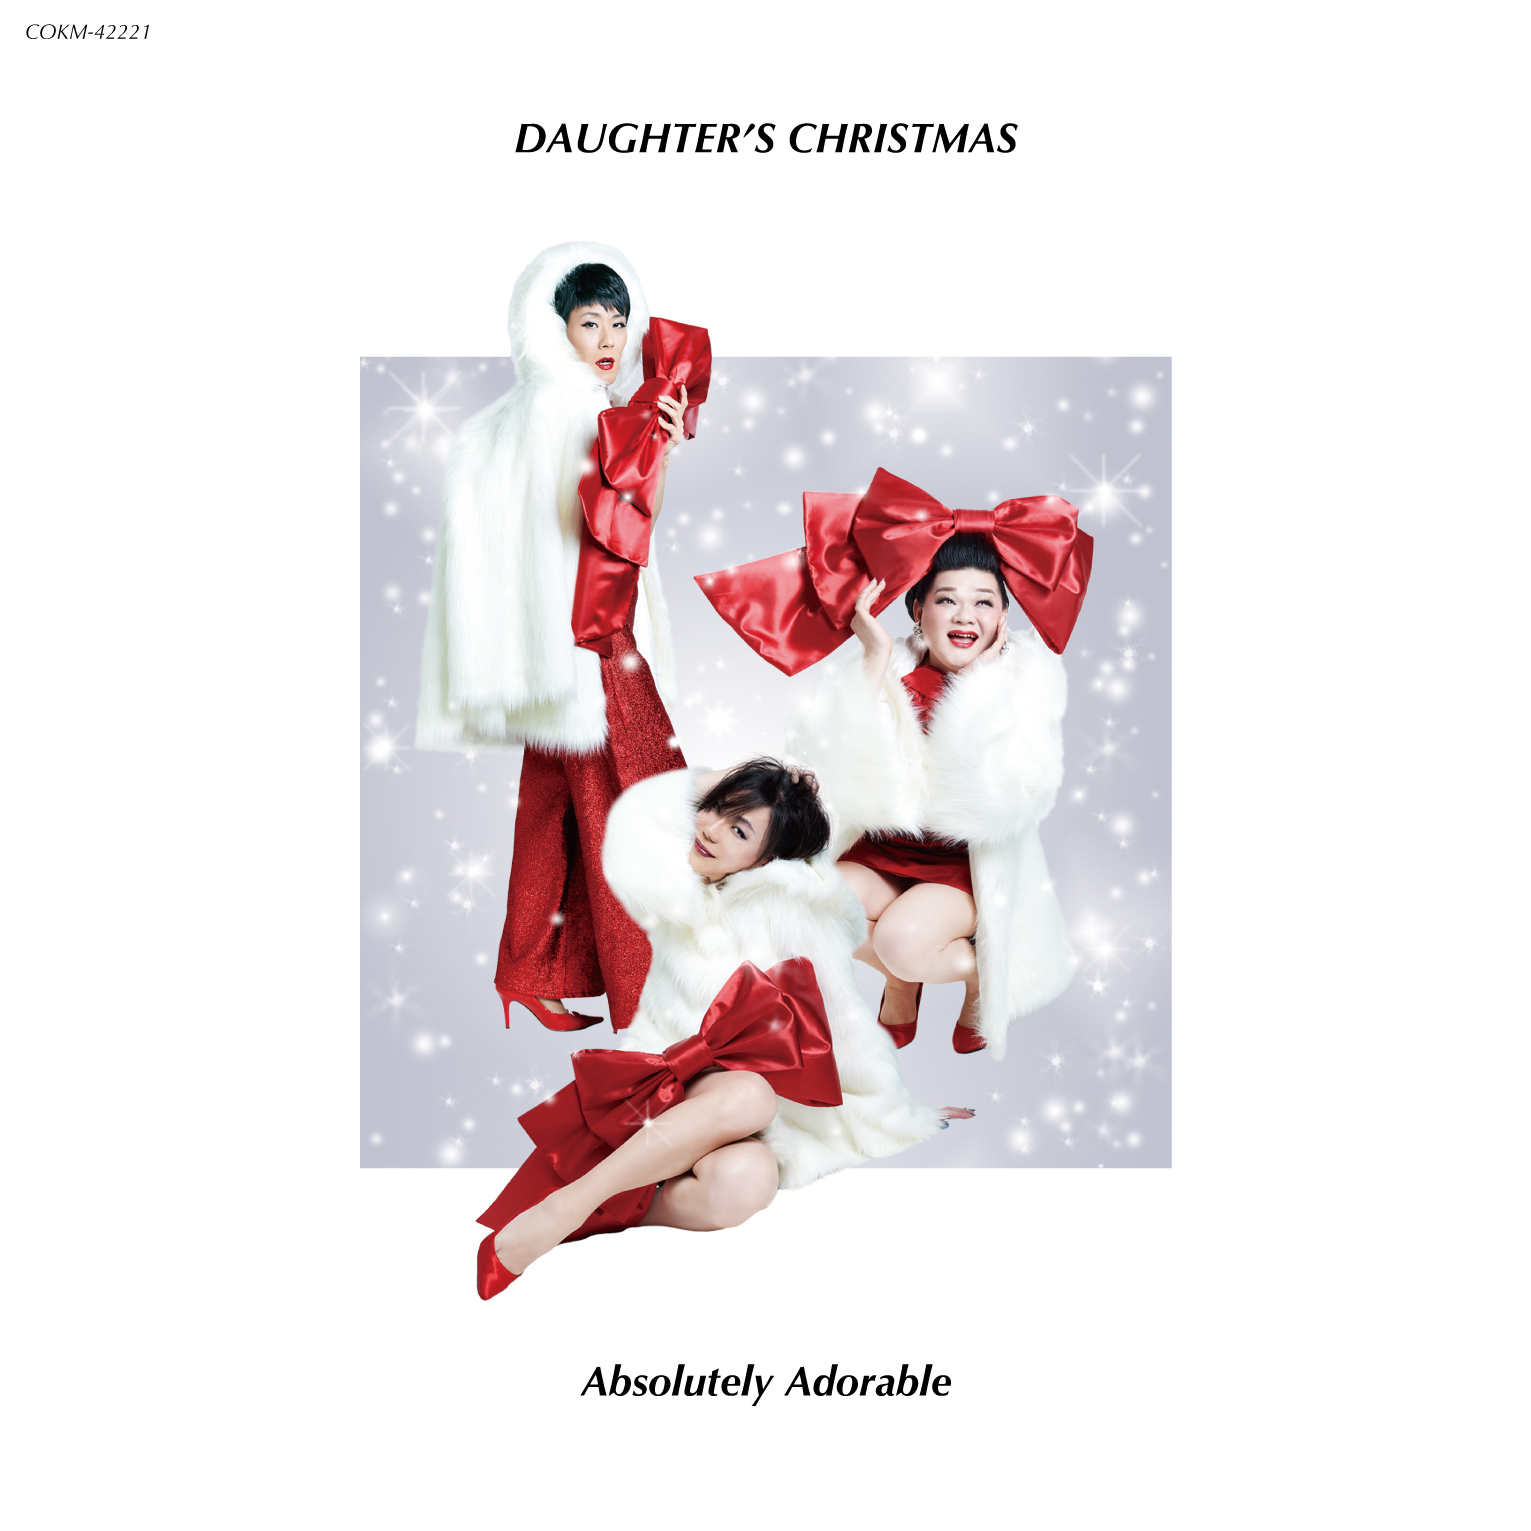 【配信開始】NEW SINGLE『DAUGHTER'S CHRISTMAS』12/12配信スタート!